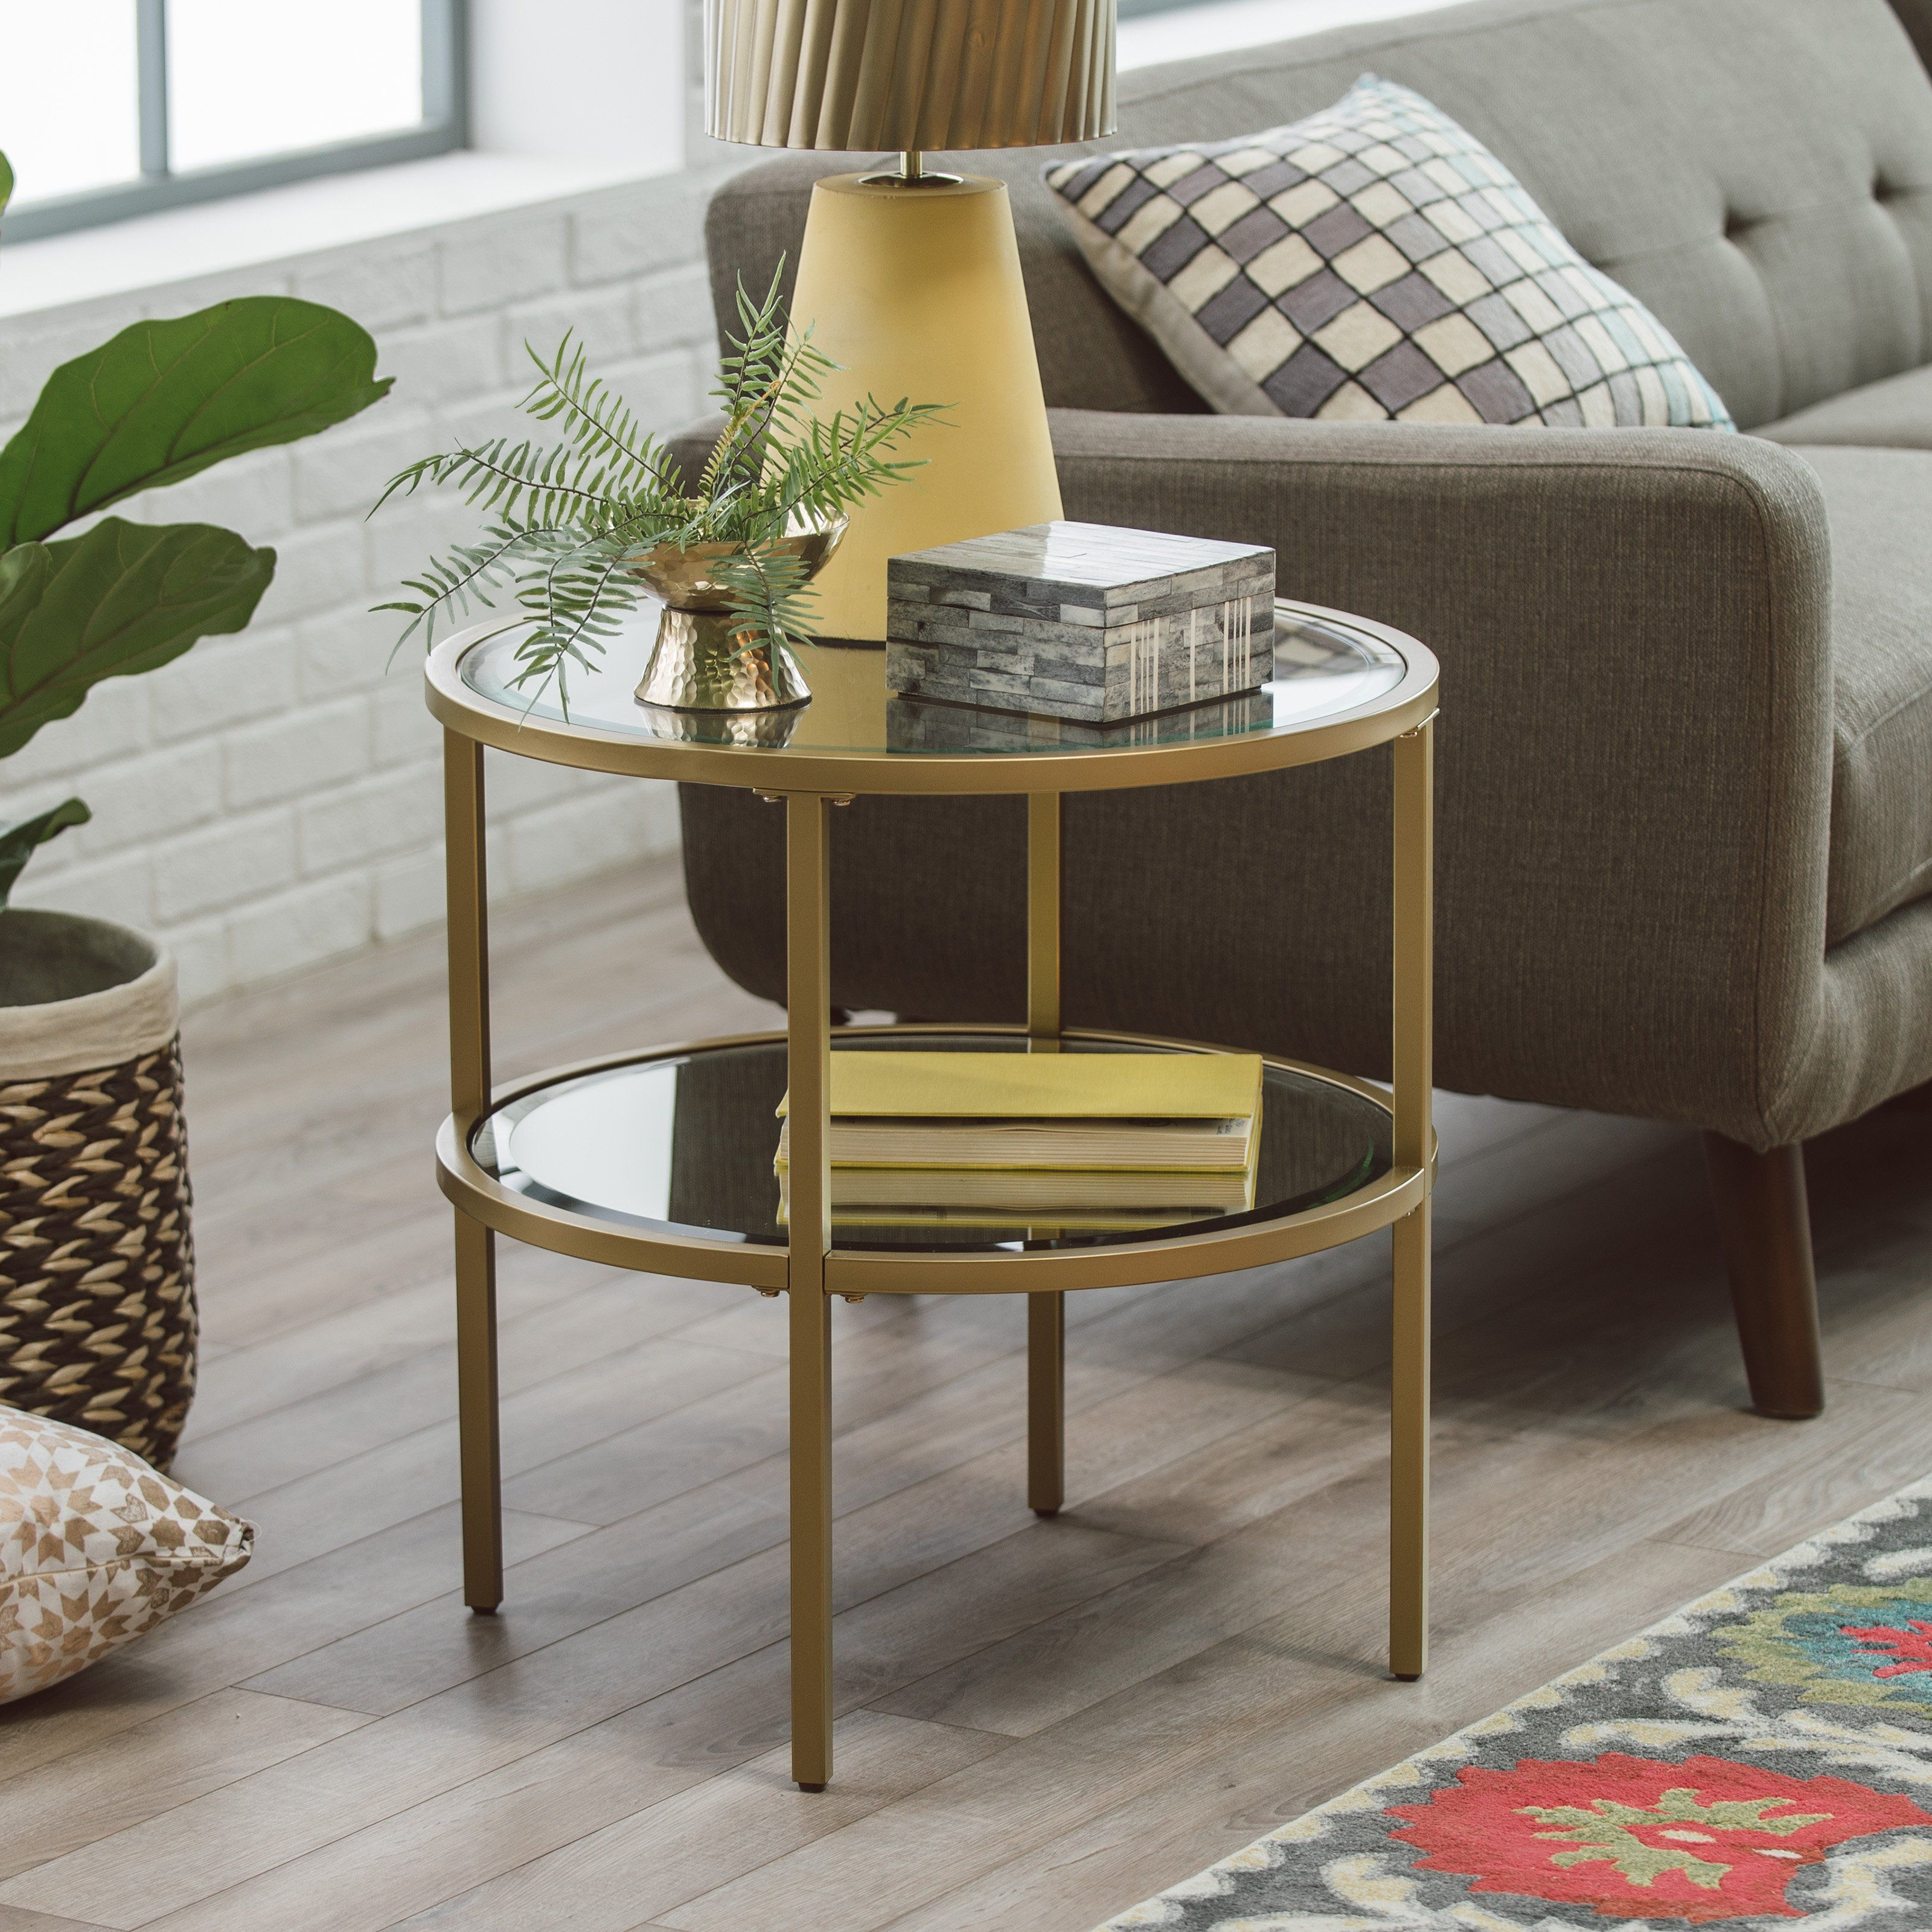 belham living lamont round end table gold new apartment montrez accent tables ikea side grey glass bedside sofa with drawer pier wicker chair drum rack and half storage brass